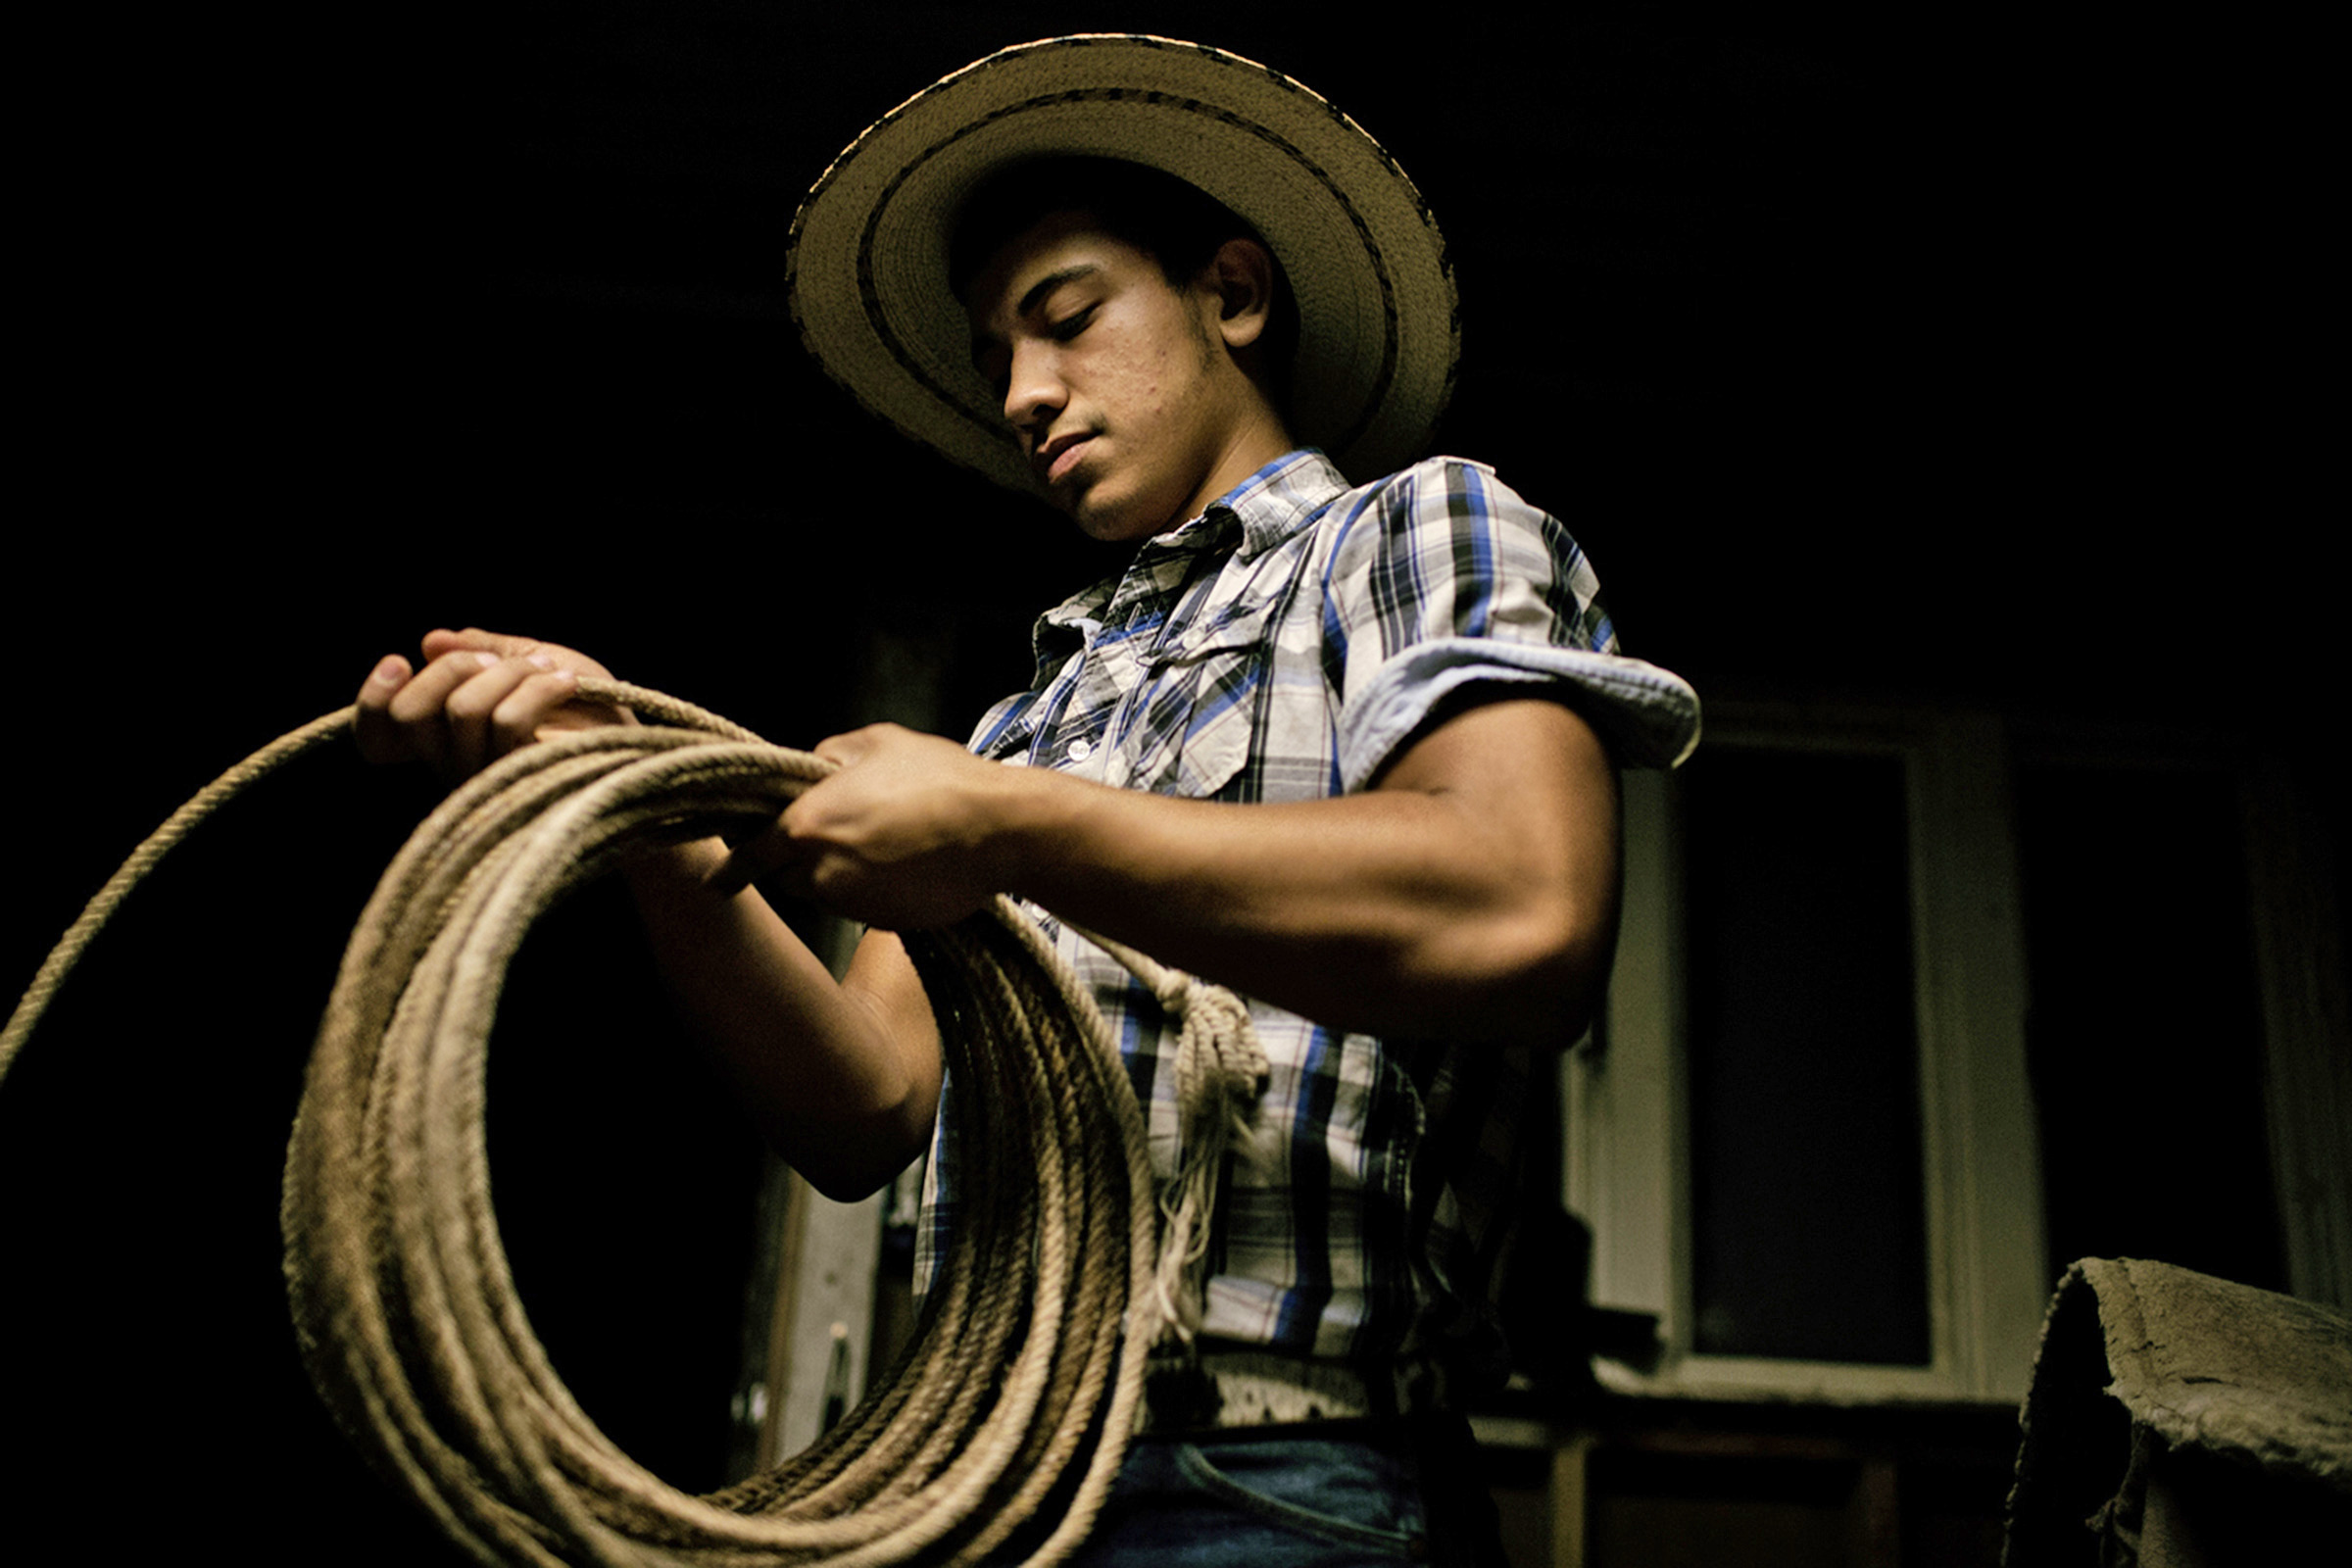 Marcos Espinoza, 17, is practicing his roping skills during a family trip to a ranch on the outskirts of Bowling Green, Kentucky. (Photo by Betina Garcia/GroundTruth)